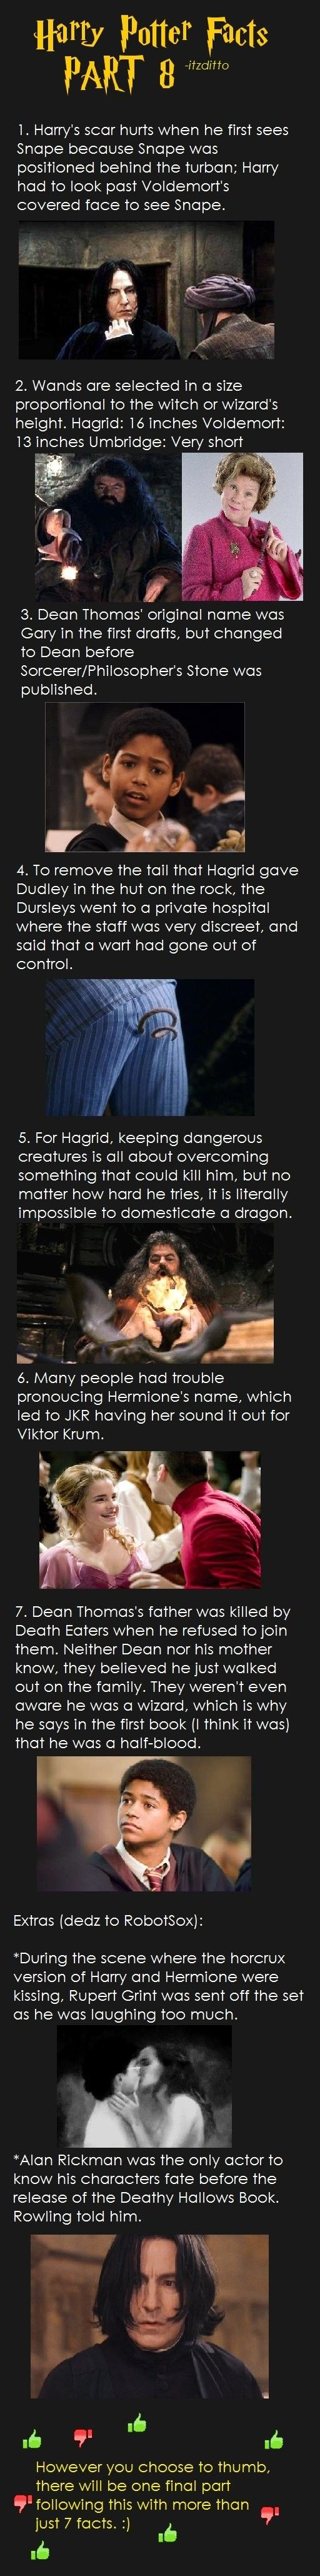 Harry Potter facts 8